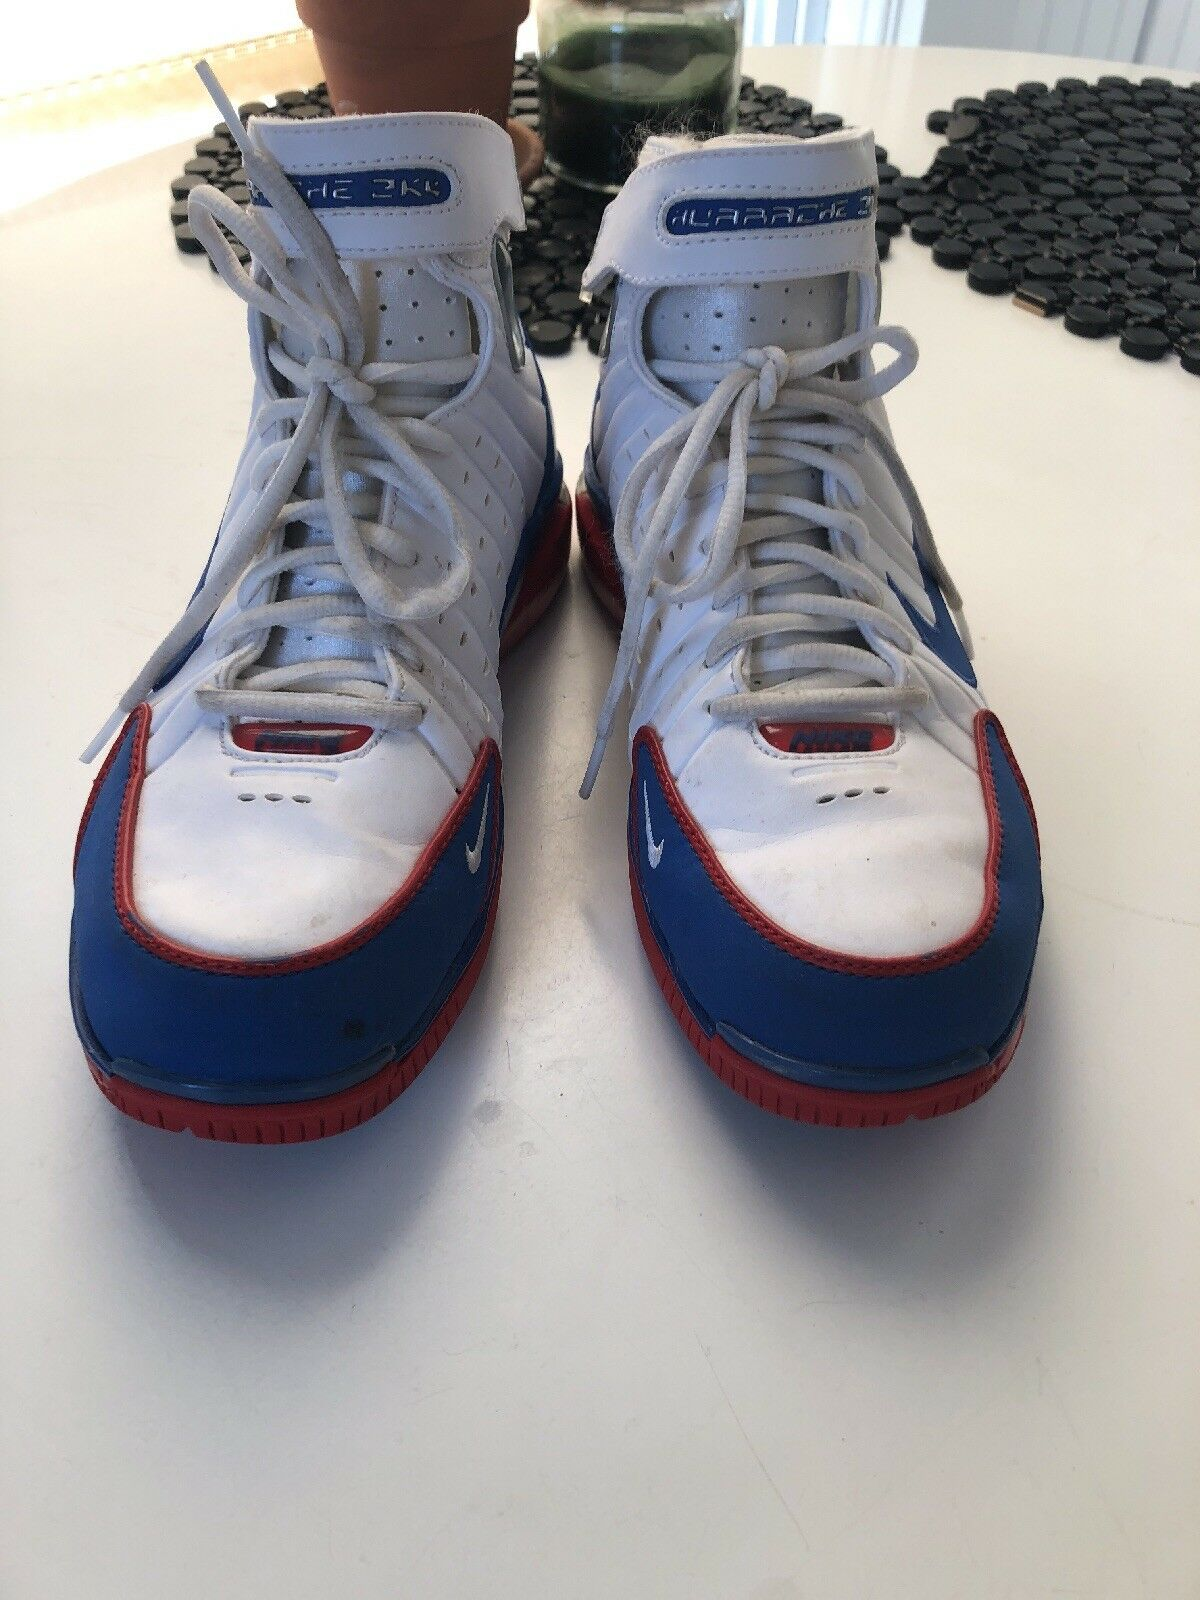 Nike Huarache Sneakers White bluee red Size 7.5 High Top